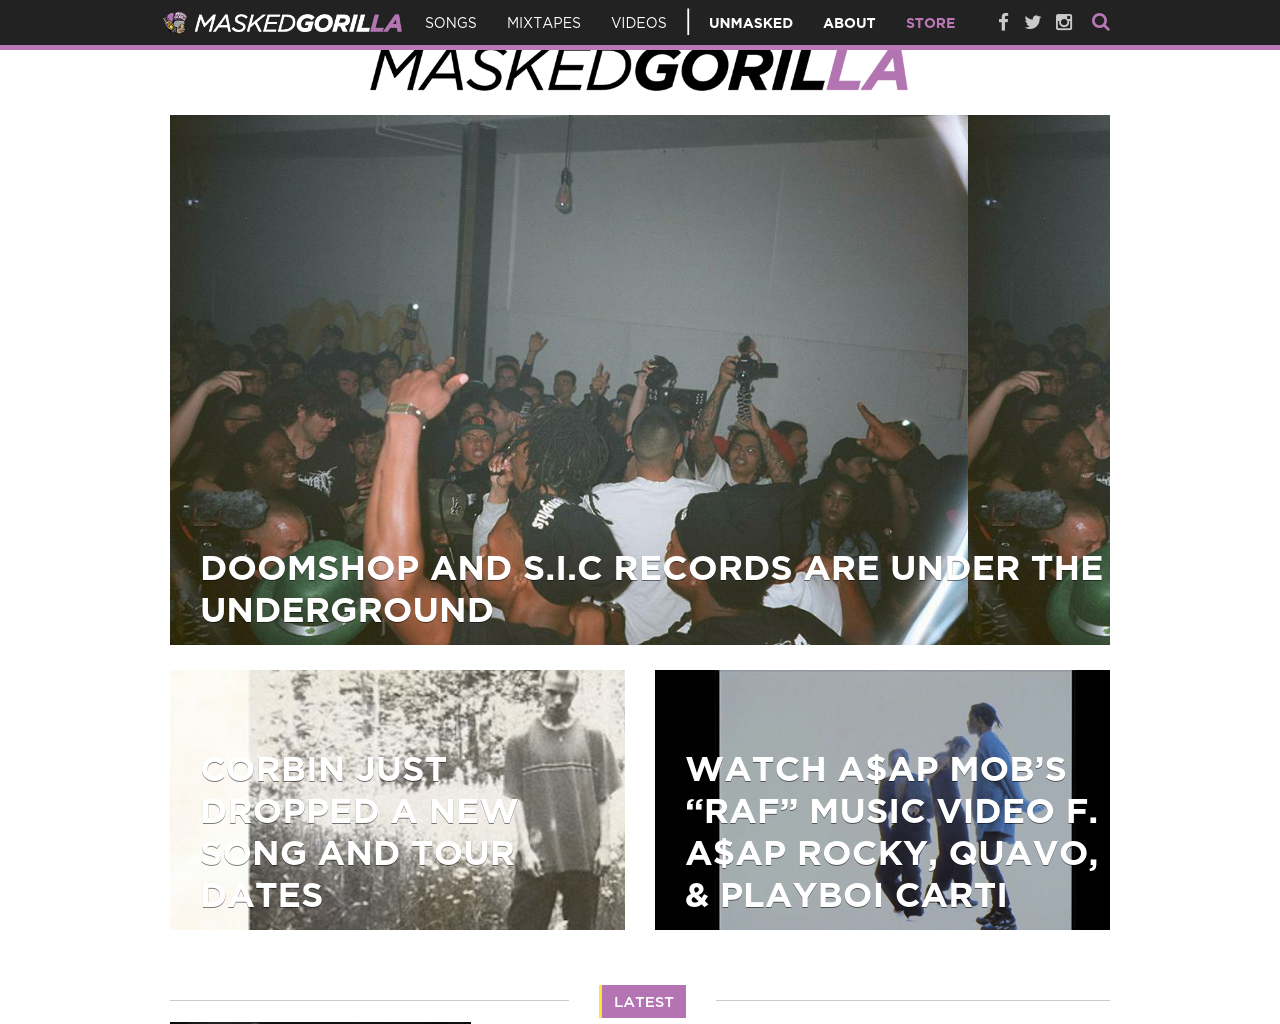 The-Masked-Gorilla-Advertising-Reviews-Pricing